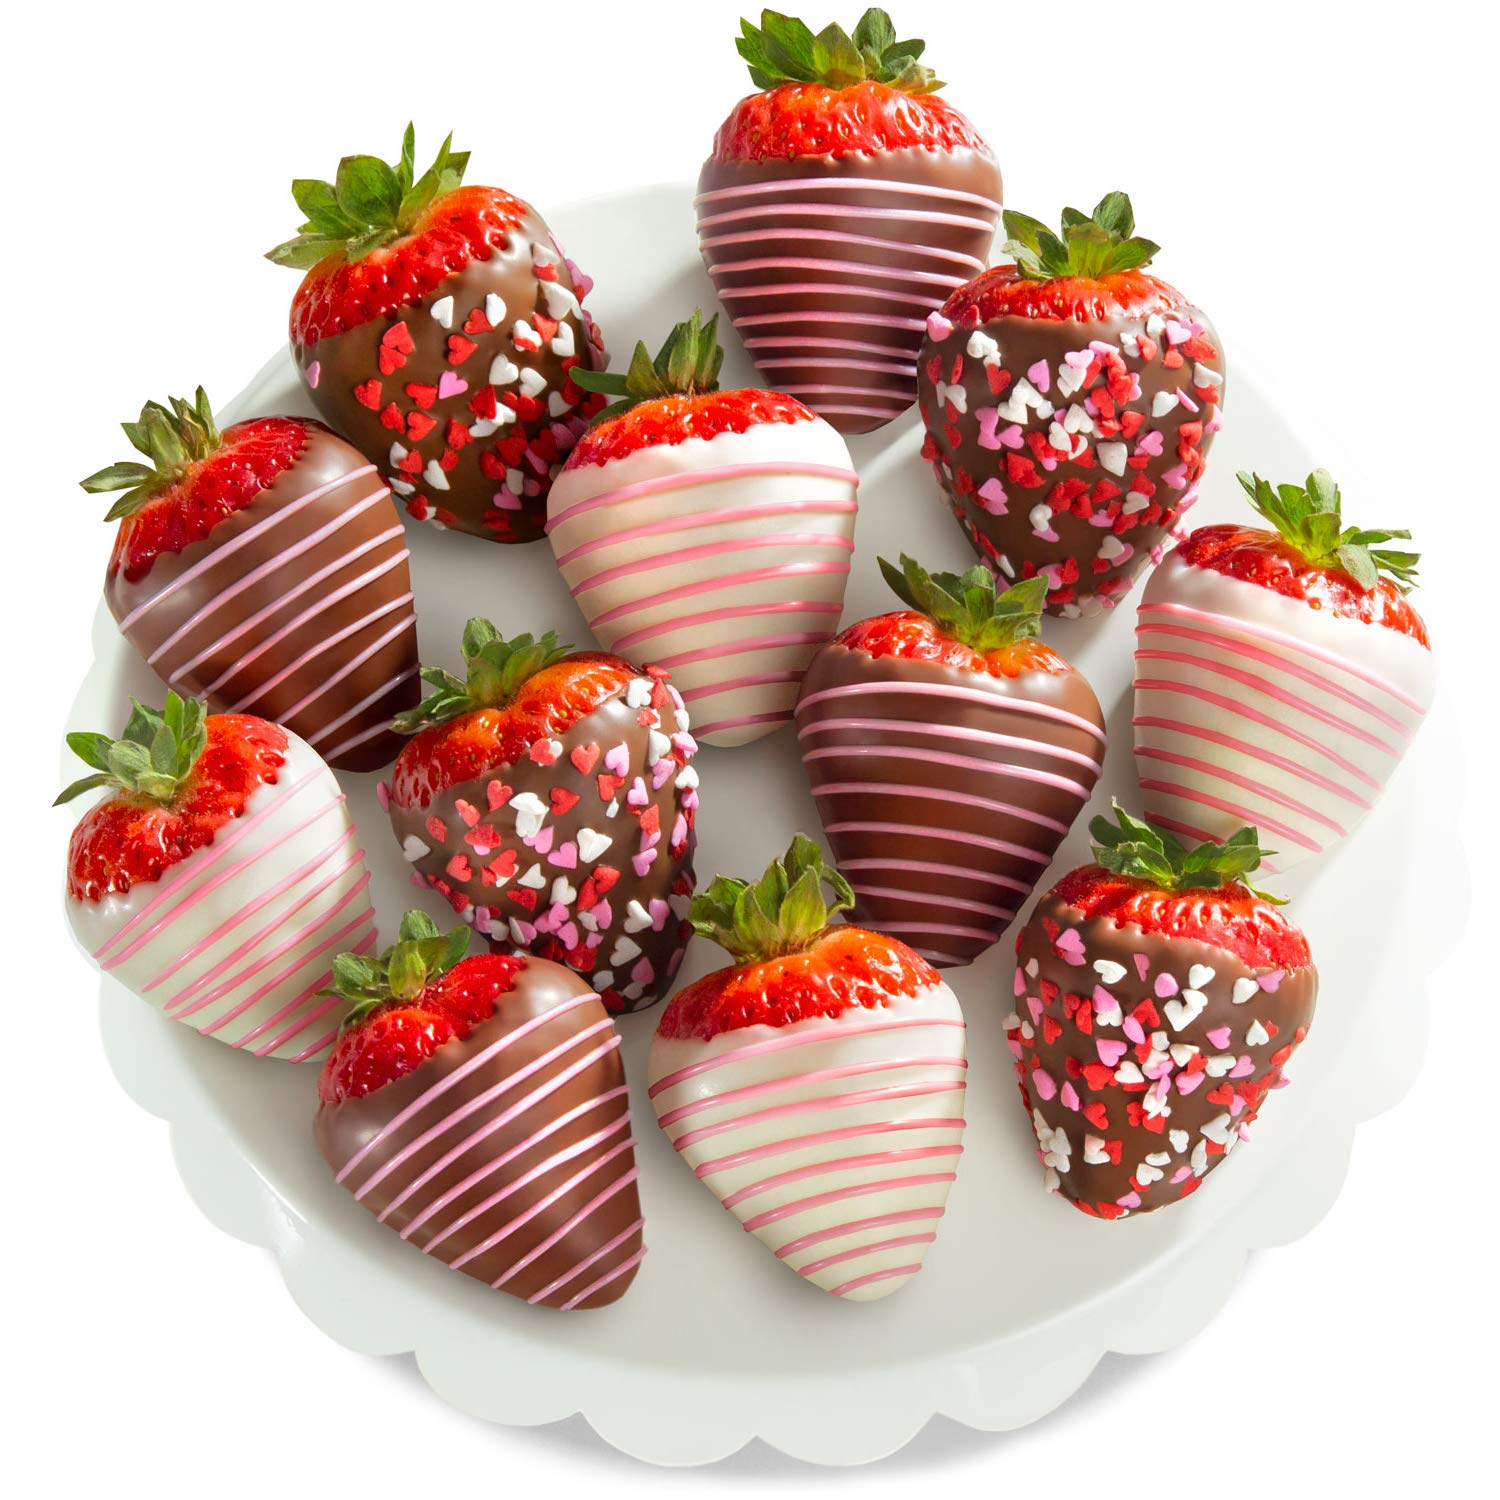 Amazon Com Golden State Fruit 12 Love Berries Chocolate Covered Strawberries Gourmet Fruit Gifts Grocery Gourmet Food